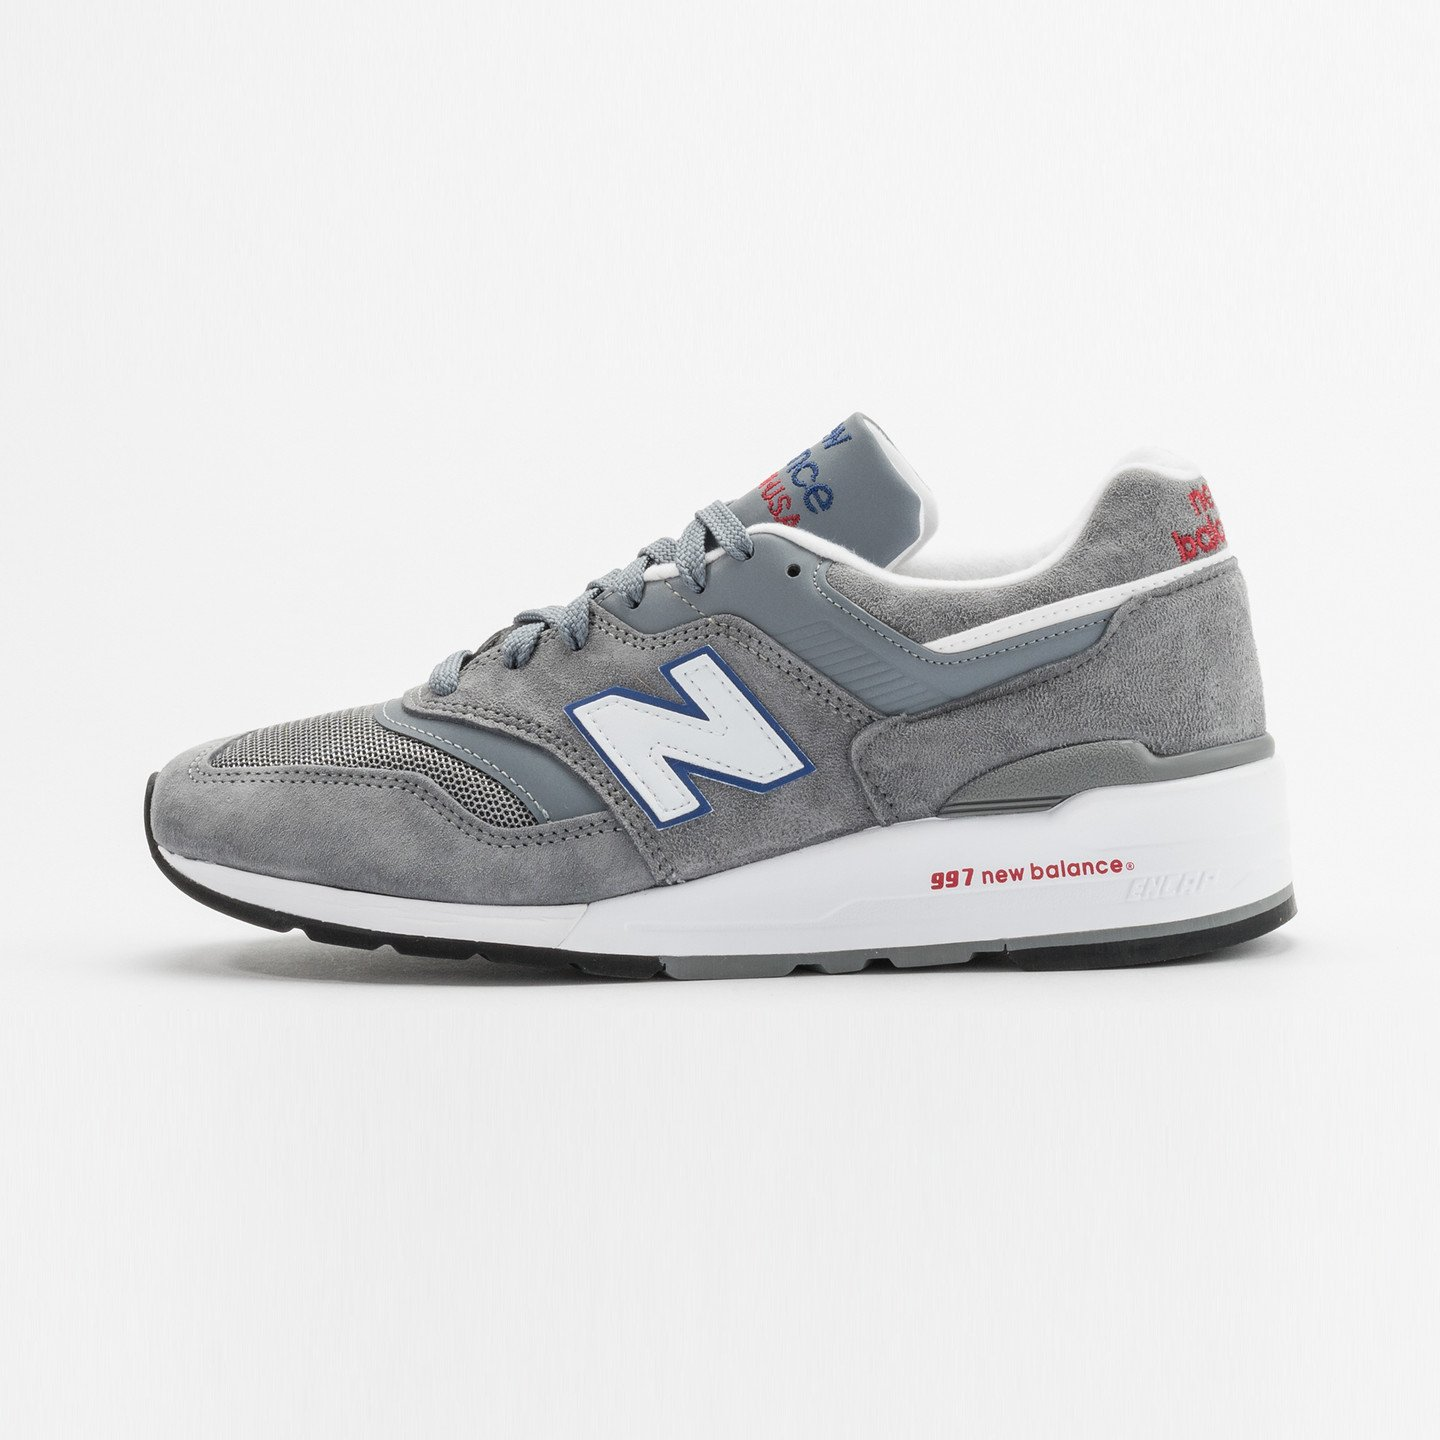 New Balance M997 Made in USA Grey / Blue / Red M997CNR-41.5